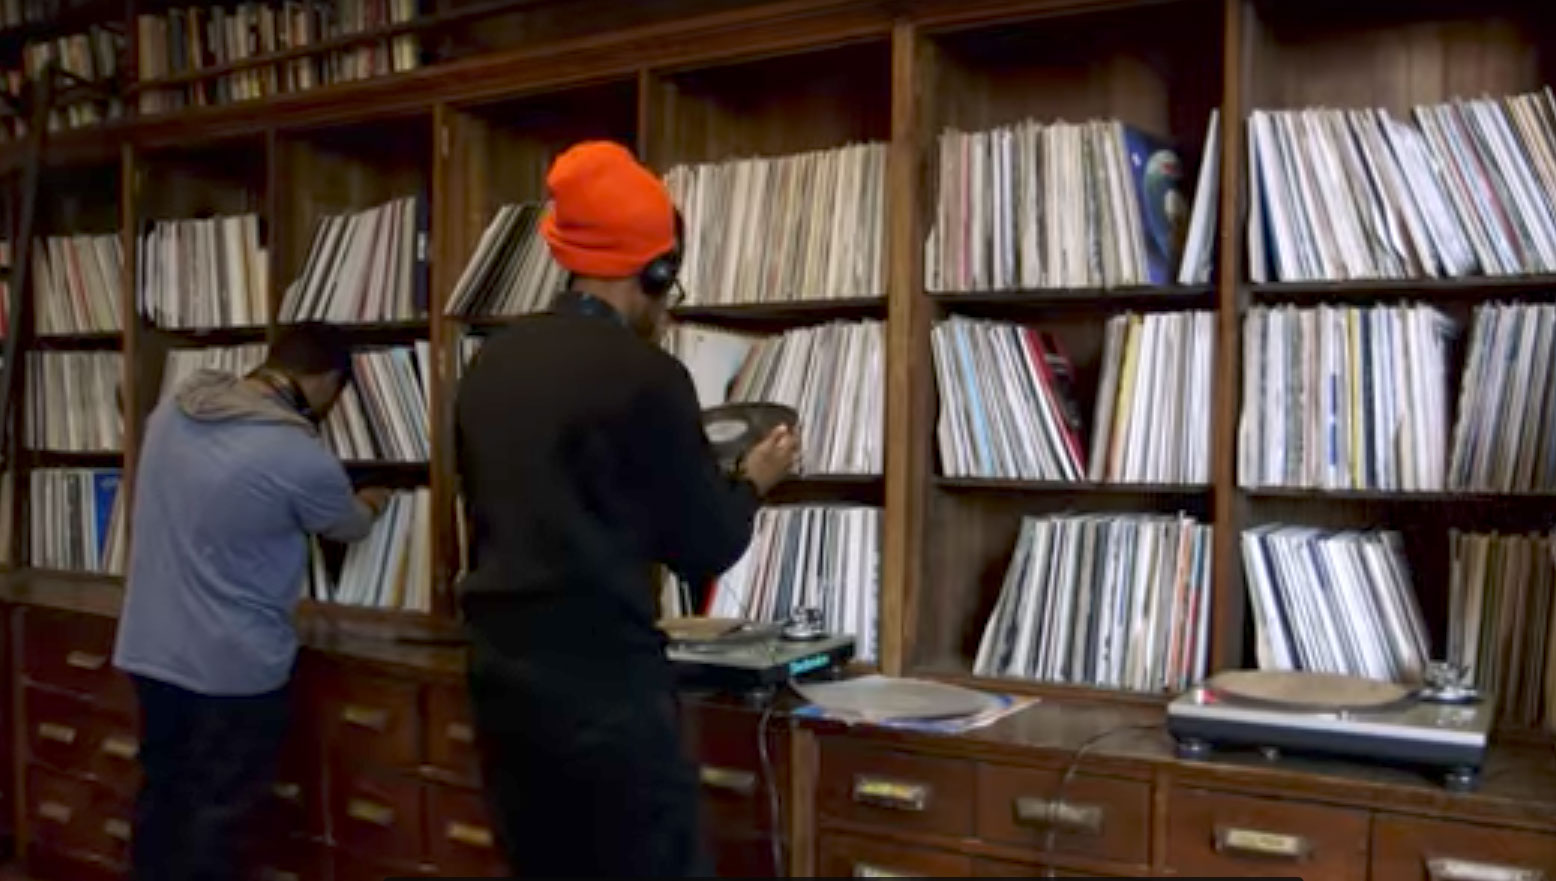 Frankie Knuckles' record collection at the Stony Island Arts Bank, as shown in the new Art21 video